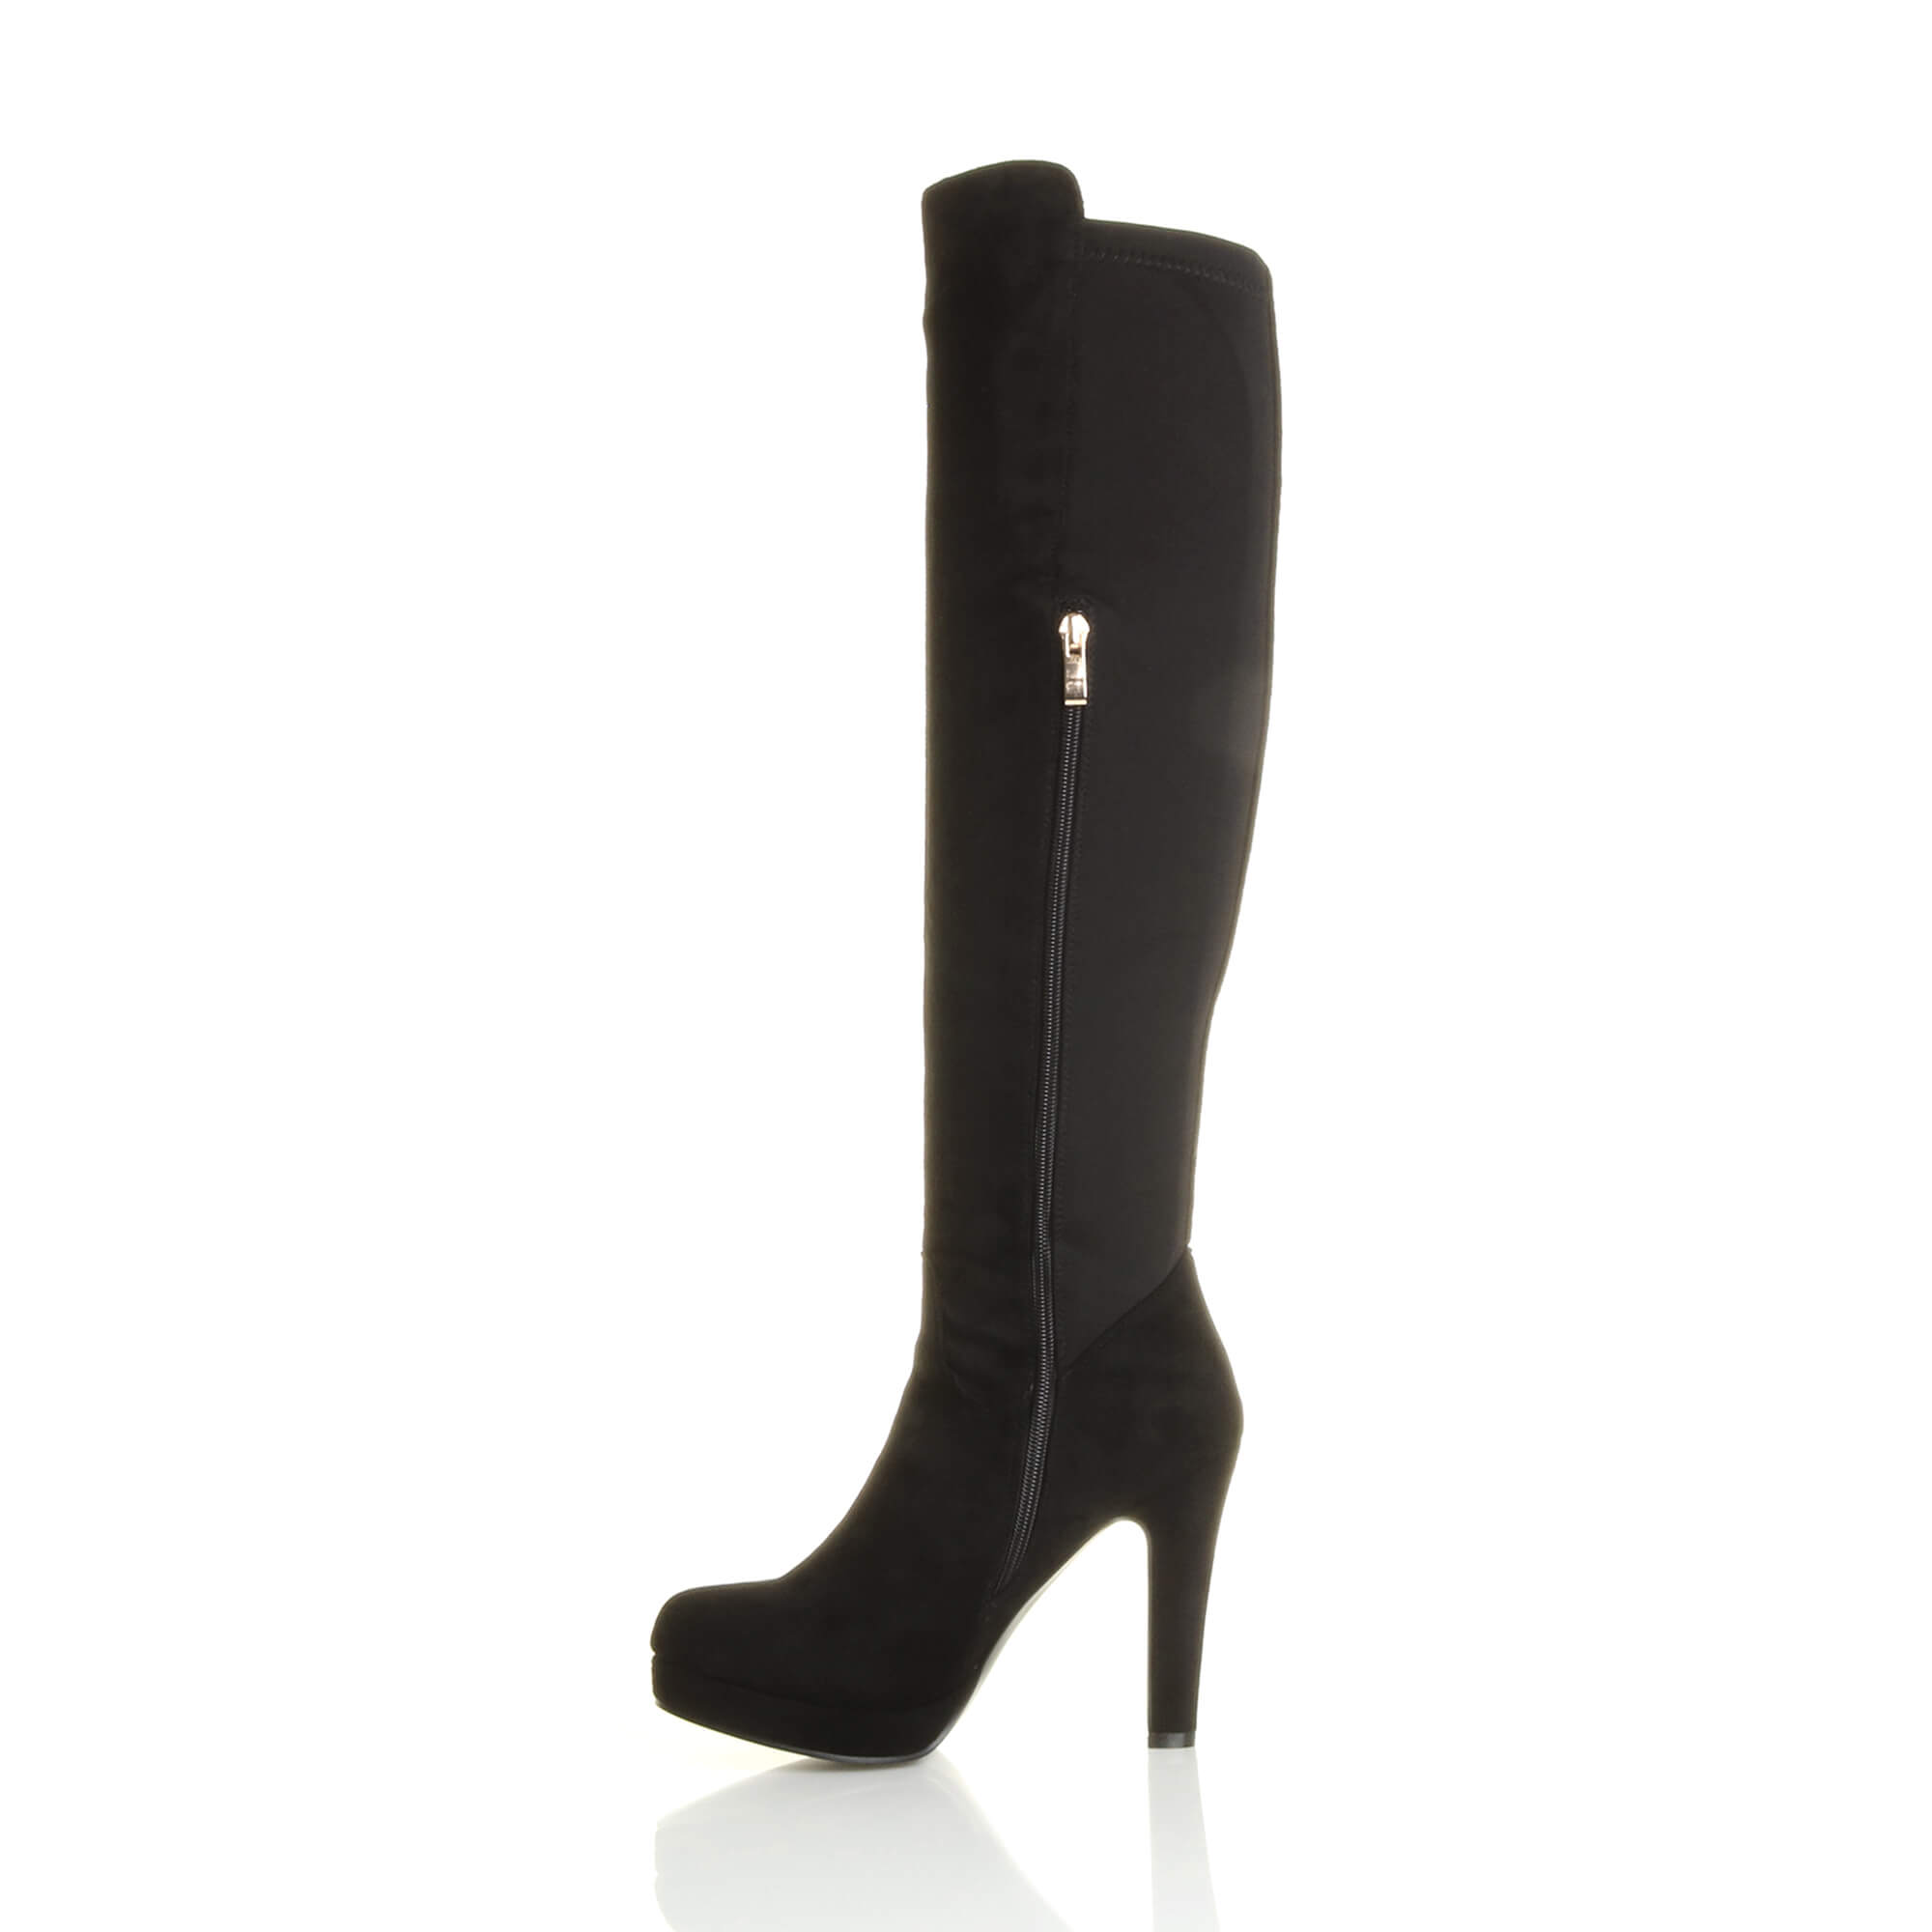 WOMENS-LADIES-HIGH-HEEL-PLATFORM-GOLD-ZIP-STRETCH-RIDING-OVER-KNEE-BOOTS-SIZE